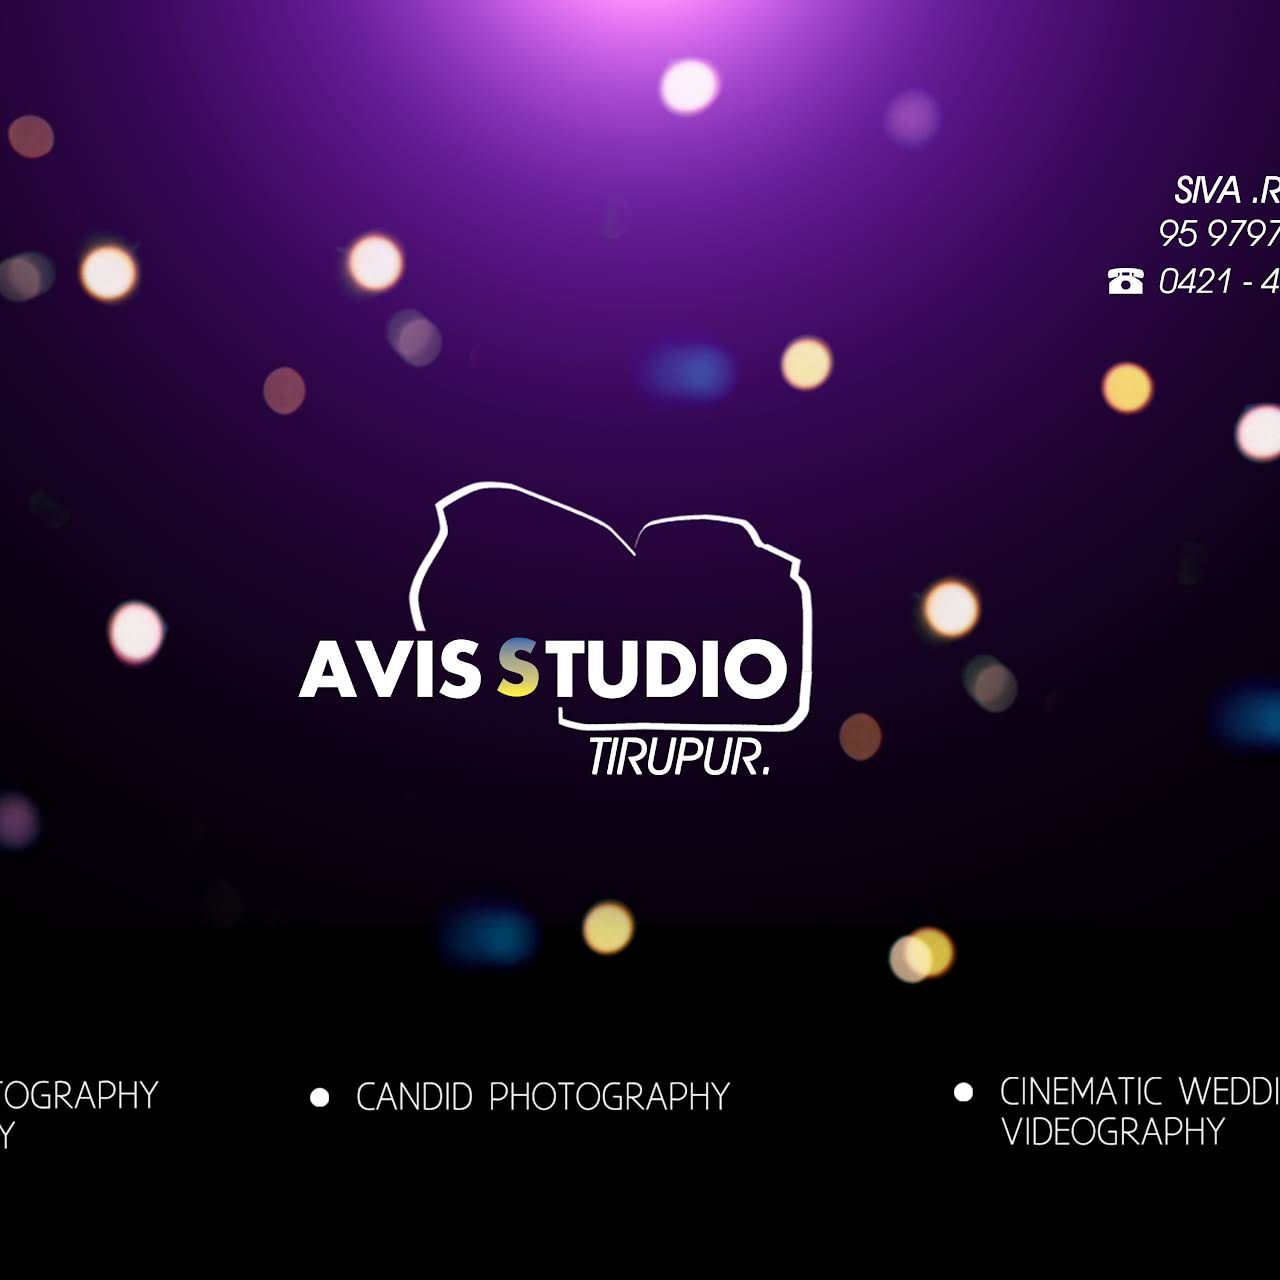 Avis Studio - Photography Studio in Tiruppur